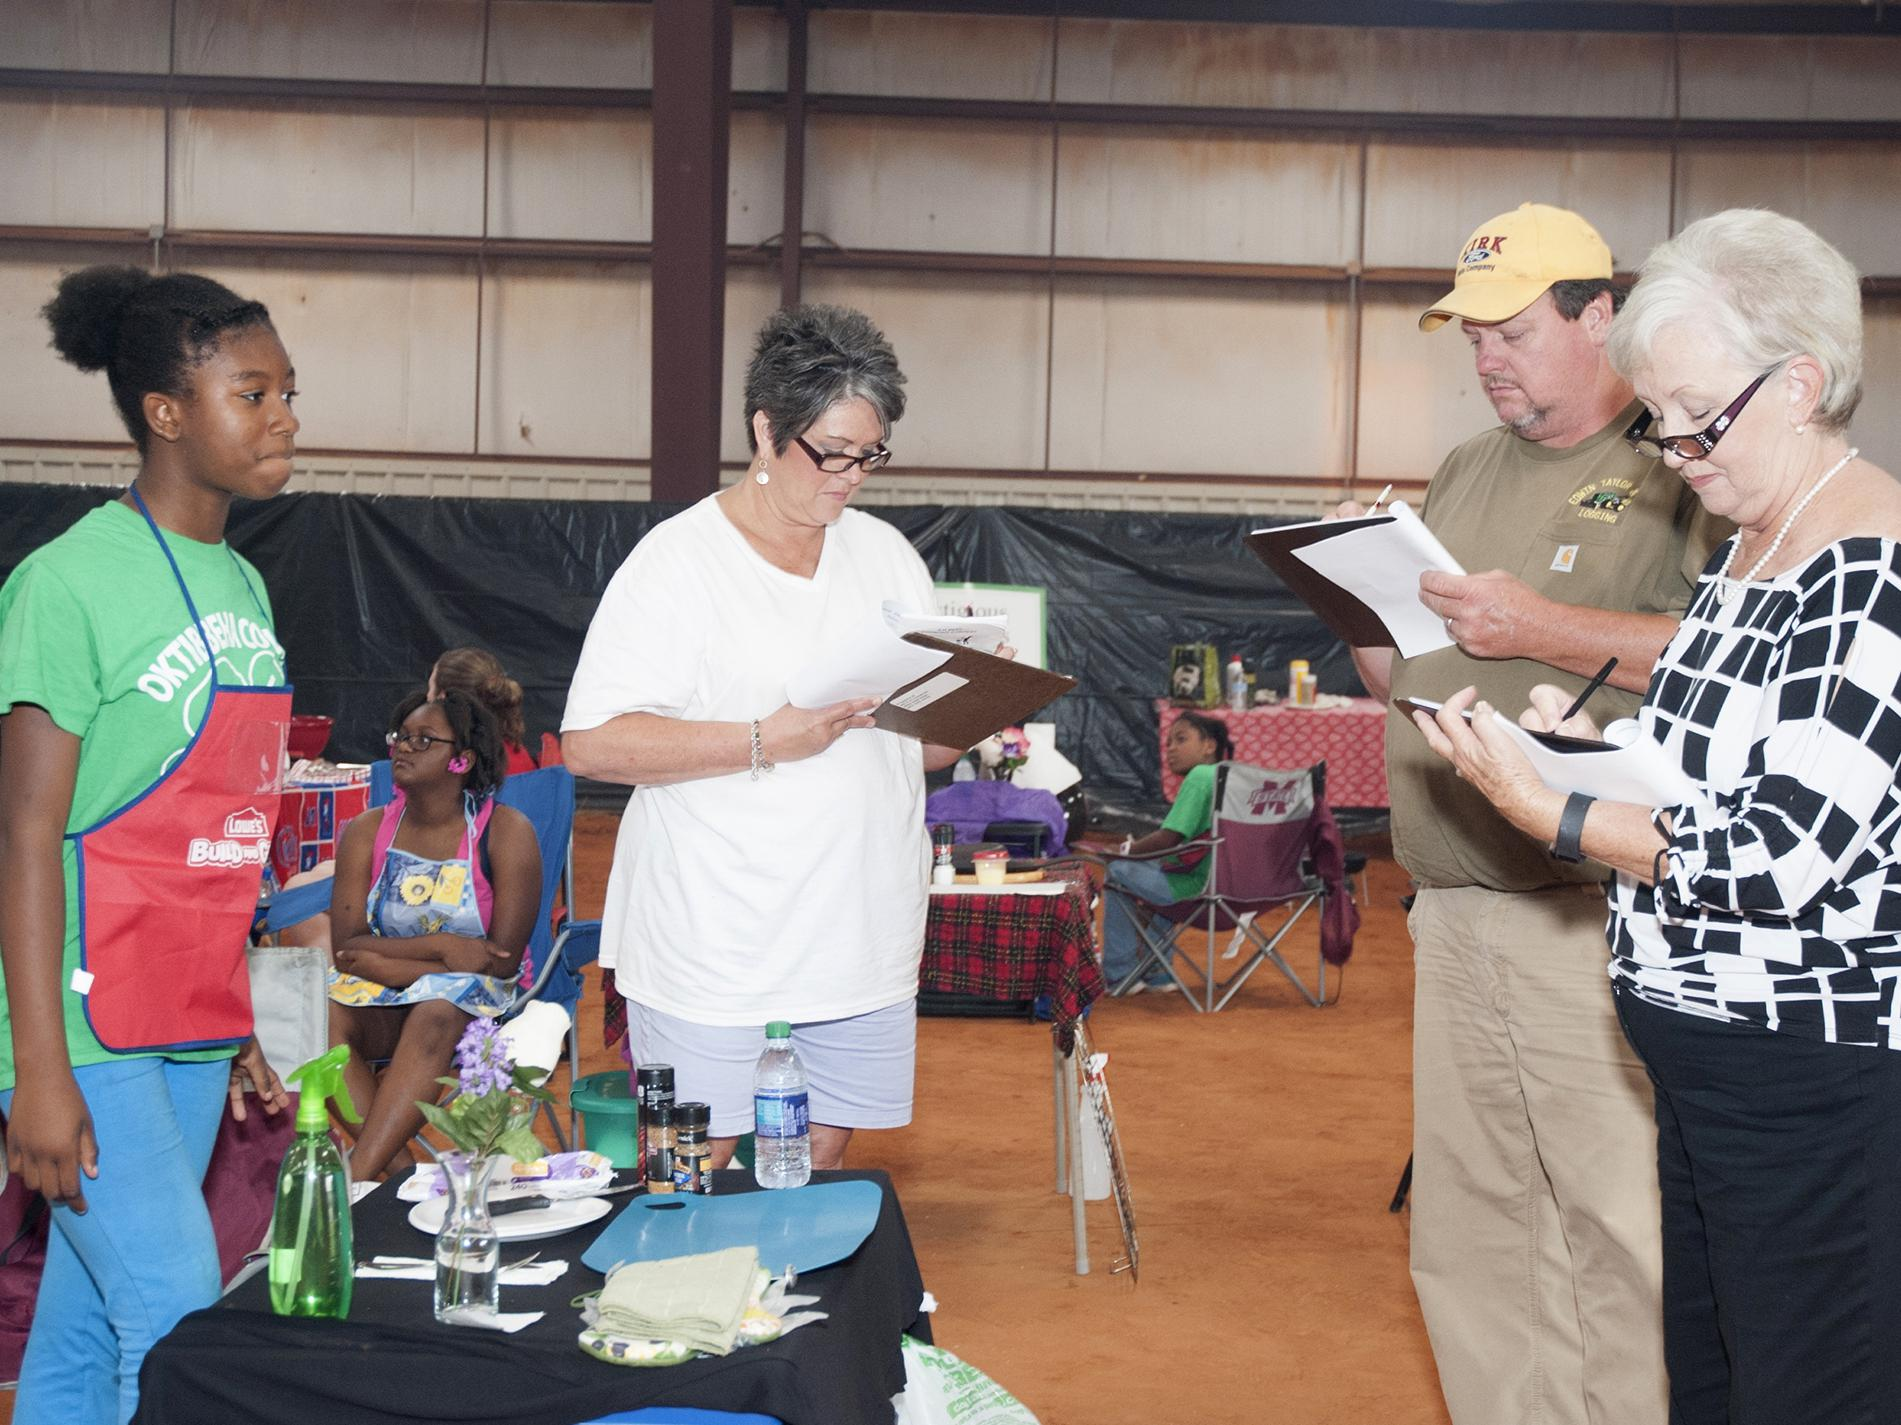 Oktibbeha County 4-H member Trukyra Lawrence, left, waits as judges, from left, Theresa Sproles, Edwin Taylor and Lanelle Martin evaluate her grilling area at the 2016 North Half State Cook-Off competition on June 28, 2016. (File photo by MSU Extension Service/ Kat Lawrence)